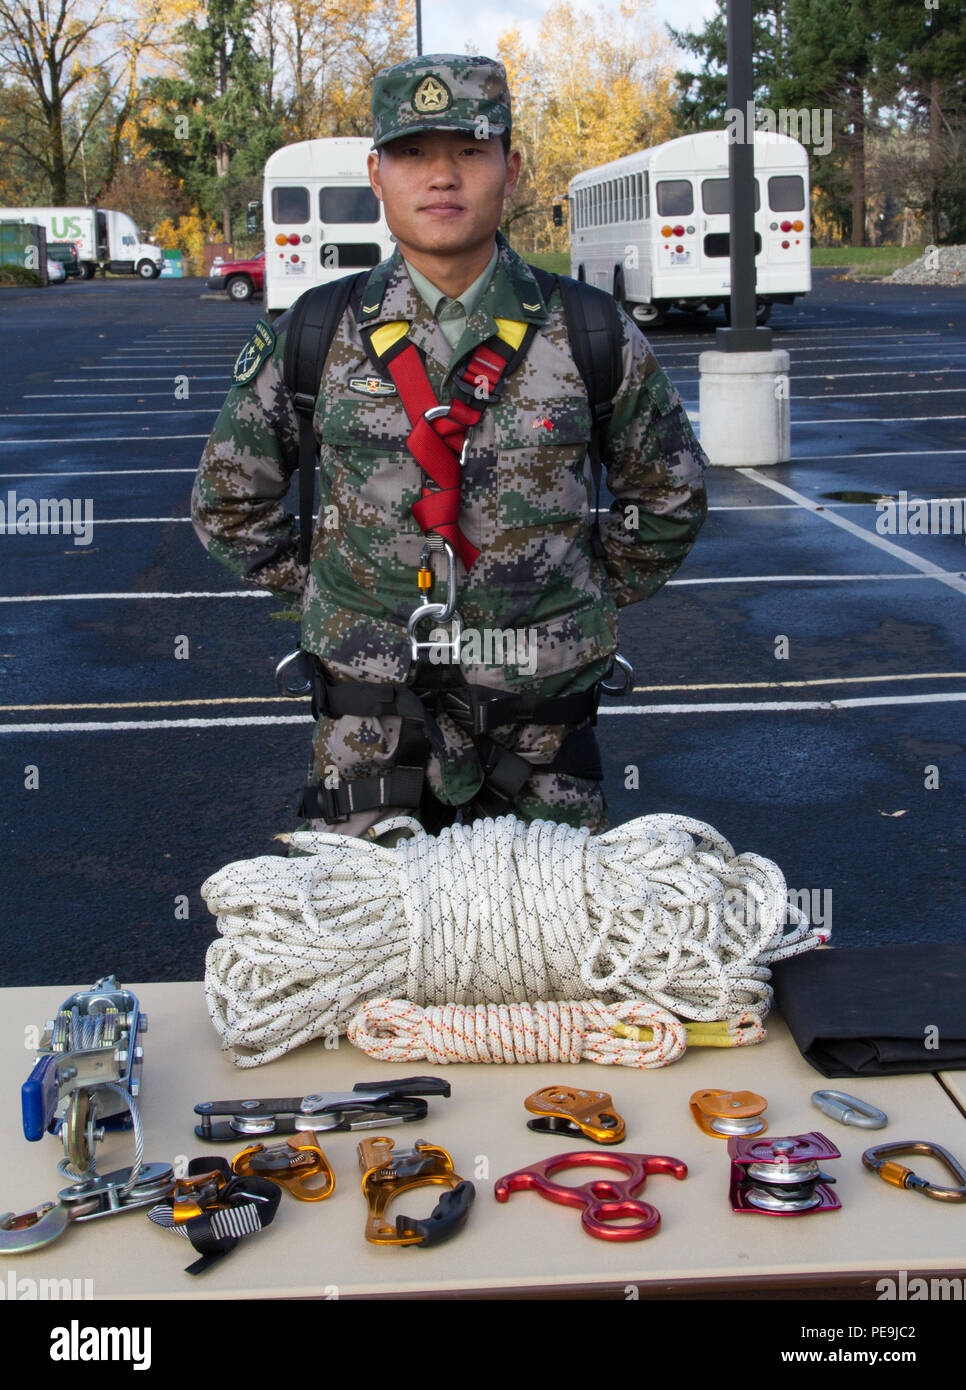 A Soldier with People's Republic of China People's Liberation Army displays rappelling equipment during the Disaster Management Exchange held at Joint Base Lewis McChord, Nov. 19, 2015. This is the 11th iteration of the DME, an annual U. S. Army Pacific- hosted exchange focused on humanitarian aide and disaster relief.  (U. S. Army photo by Staff Sgt. Trish McMurphy, 28th Public Affairs Detachment) - Stock Image